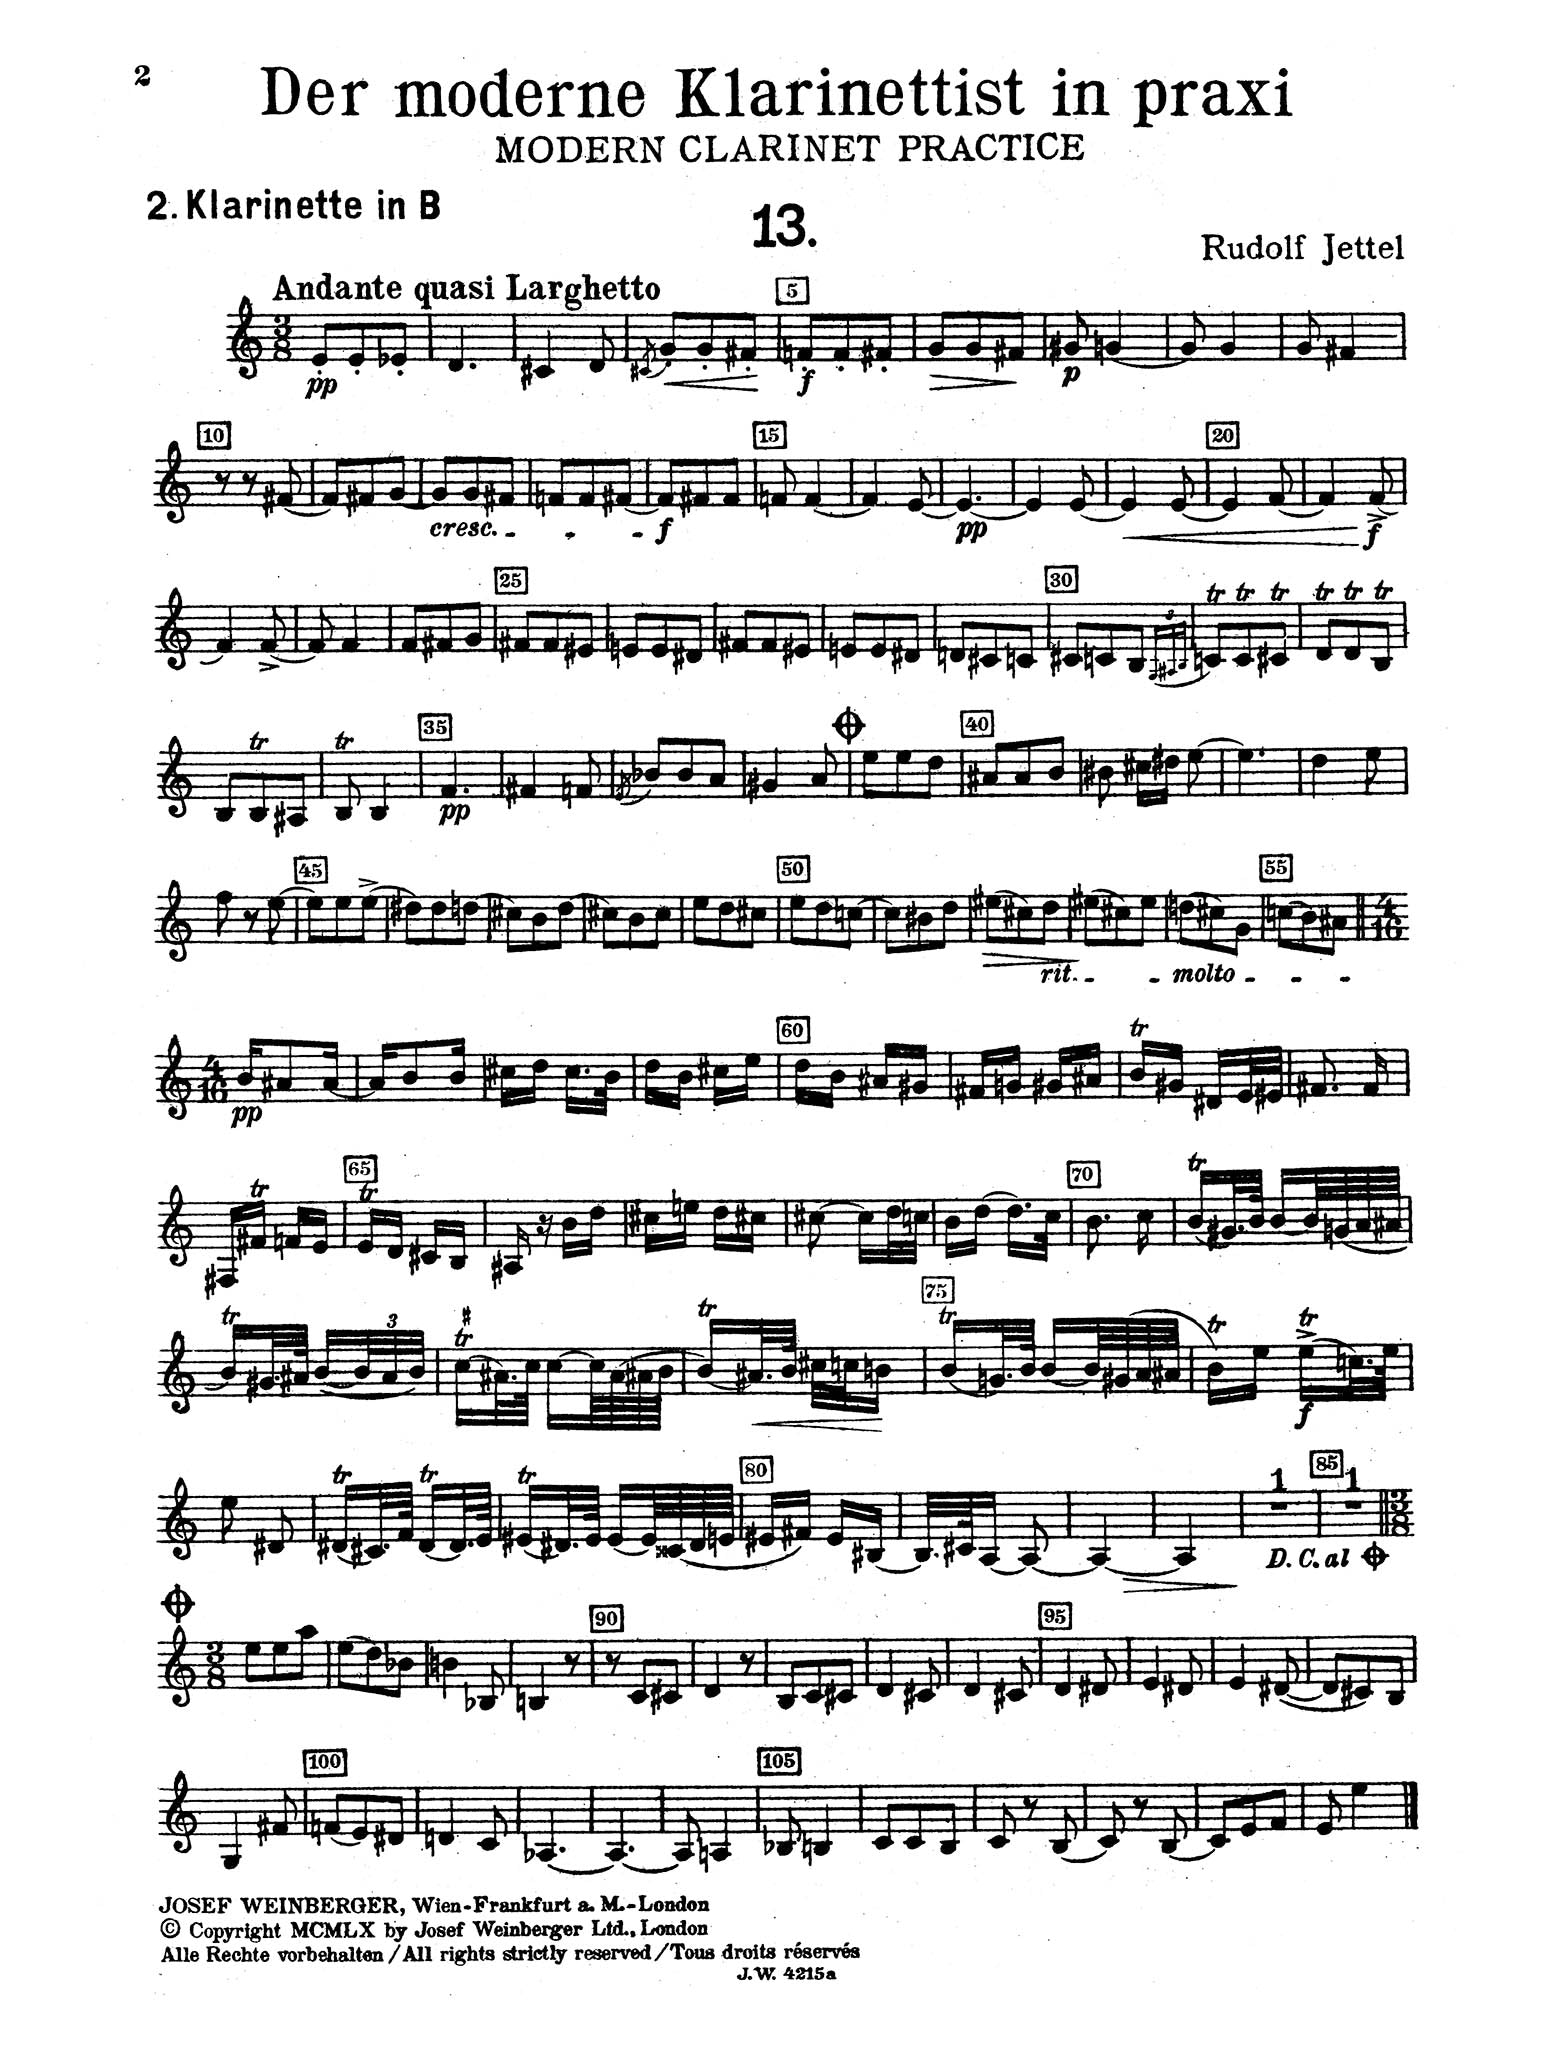 Modern Clarinet Practice, Book 3 Second Clarinet part